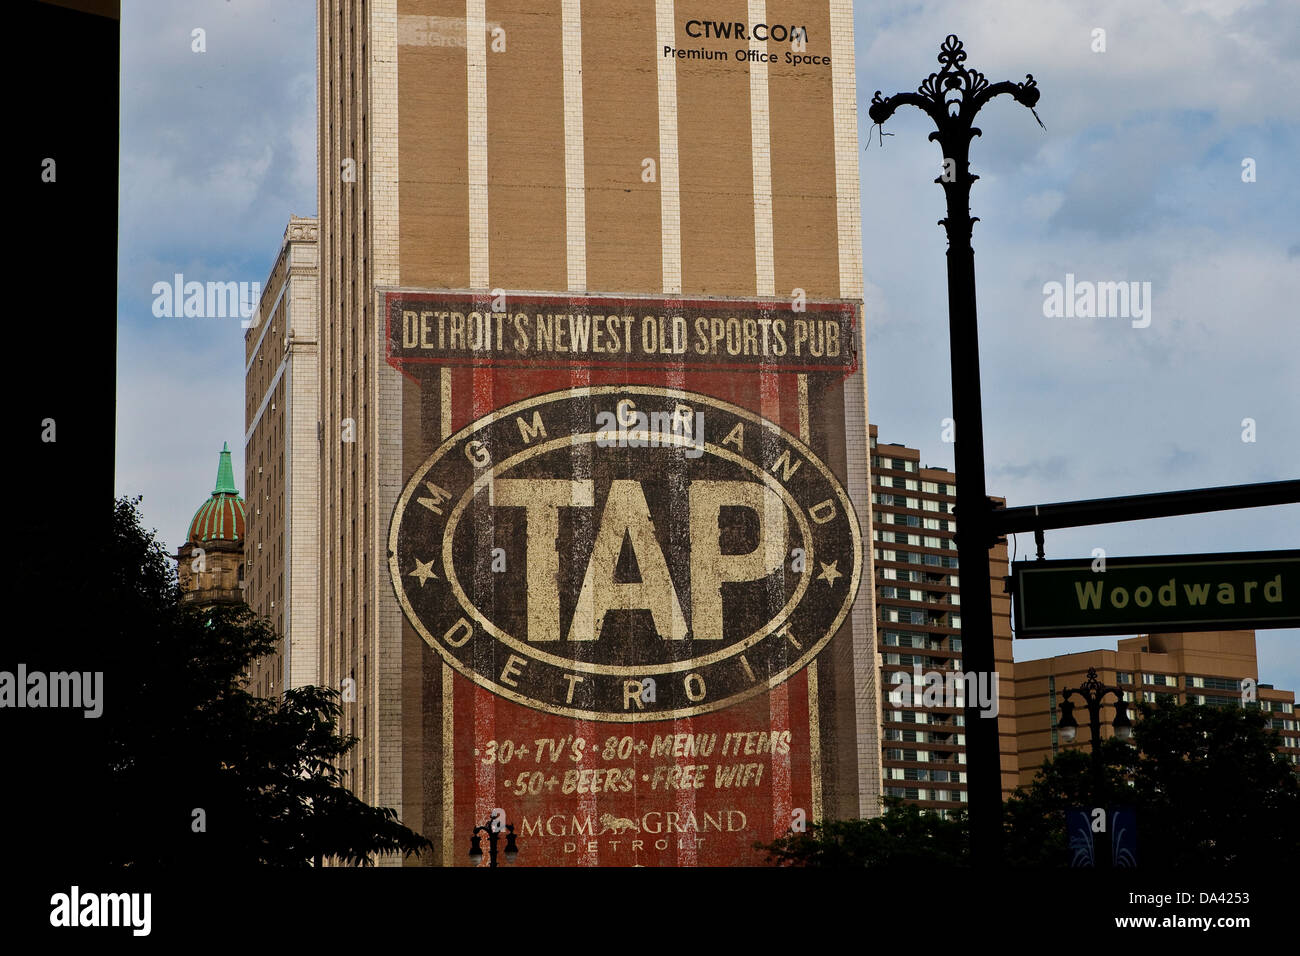 An mural advertisement for MGM Grand TAP sports pub is seen in Detroit (Mi) - Stock Image